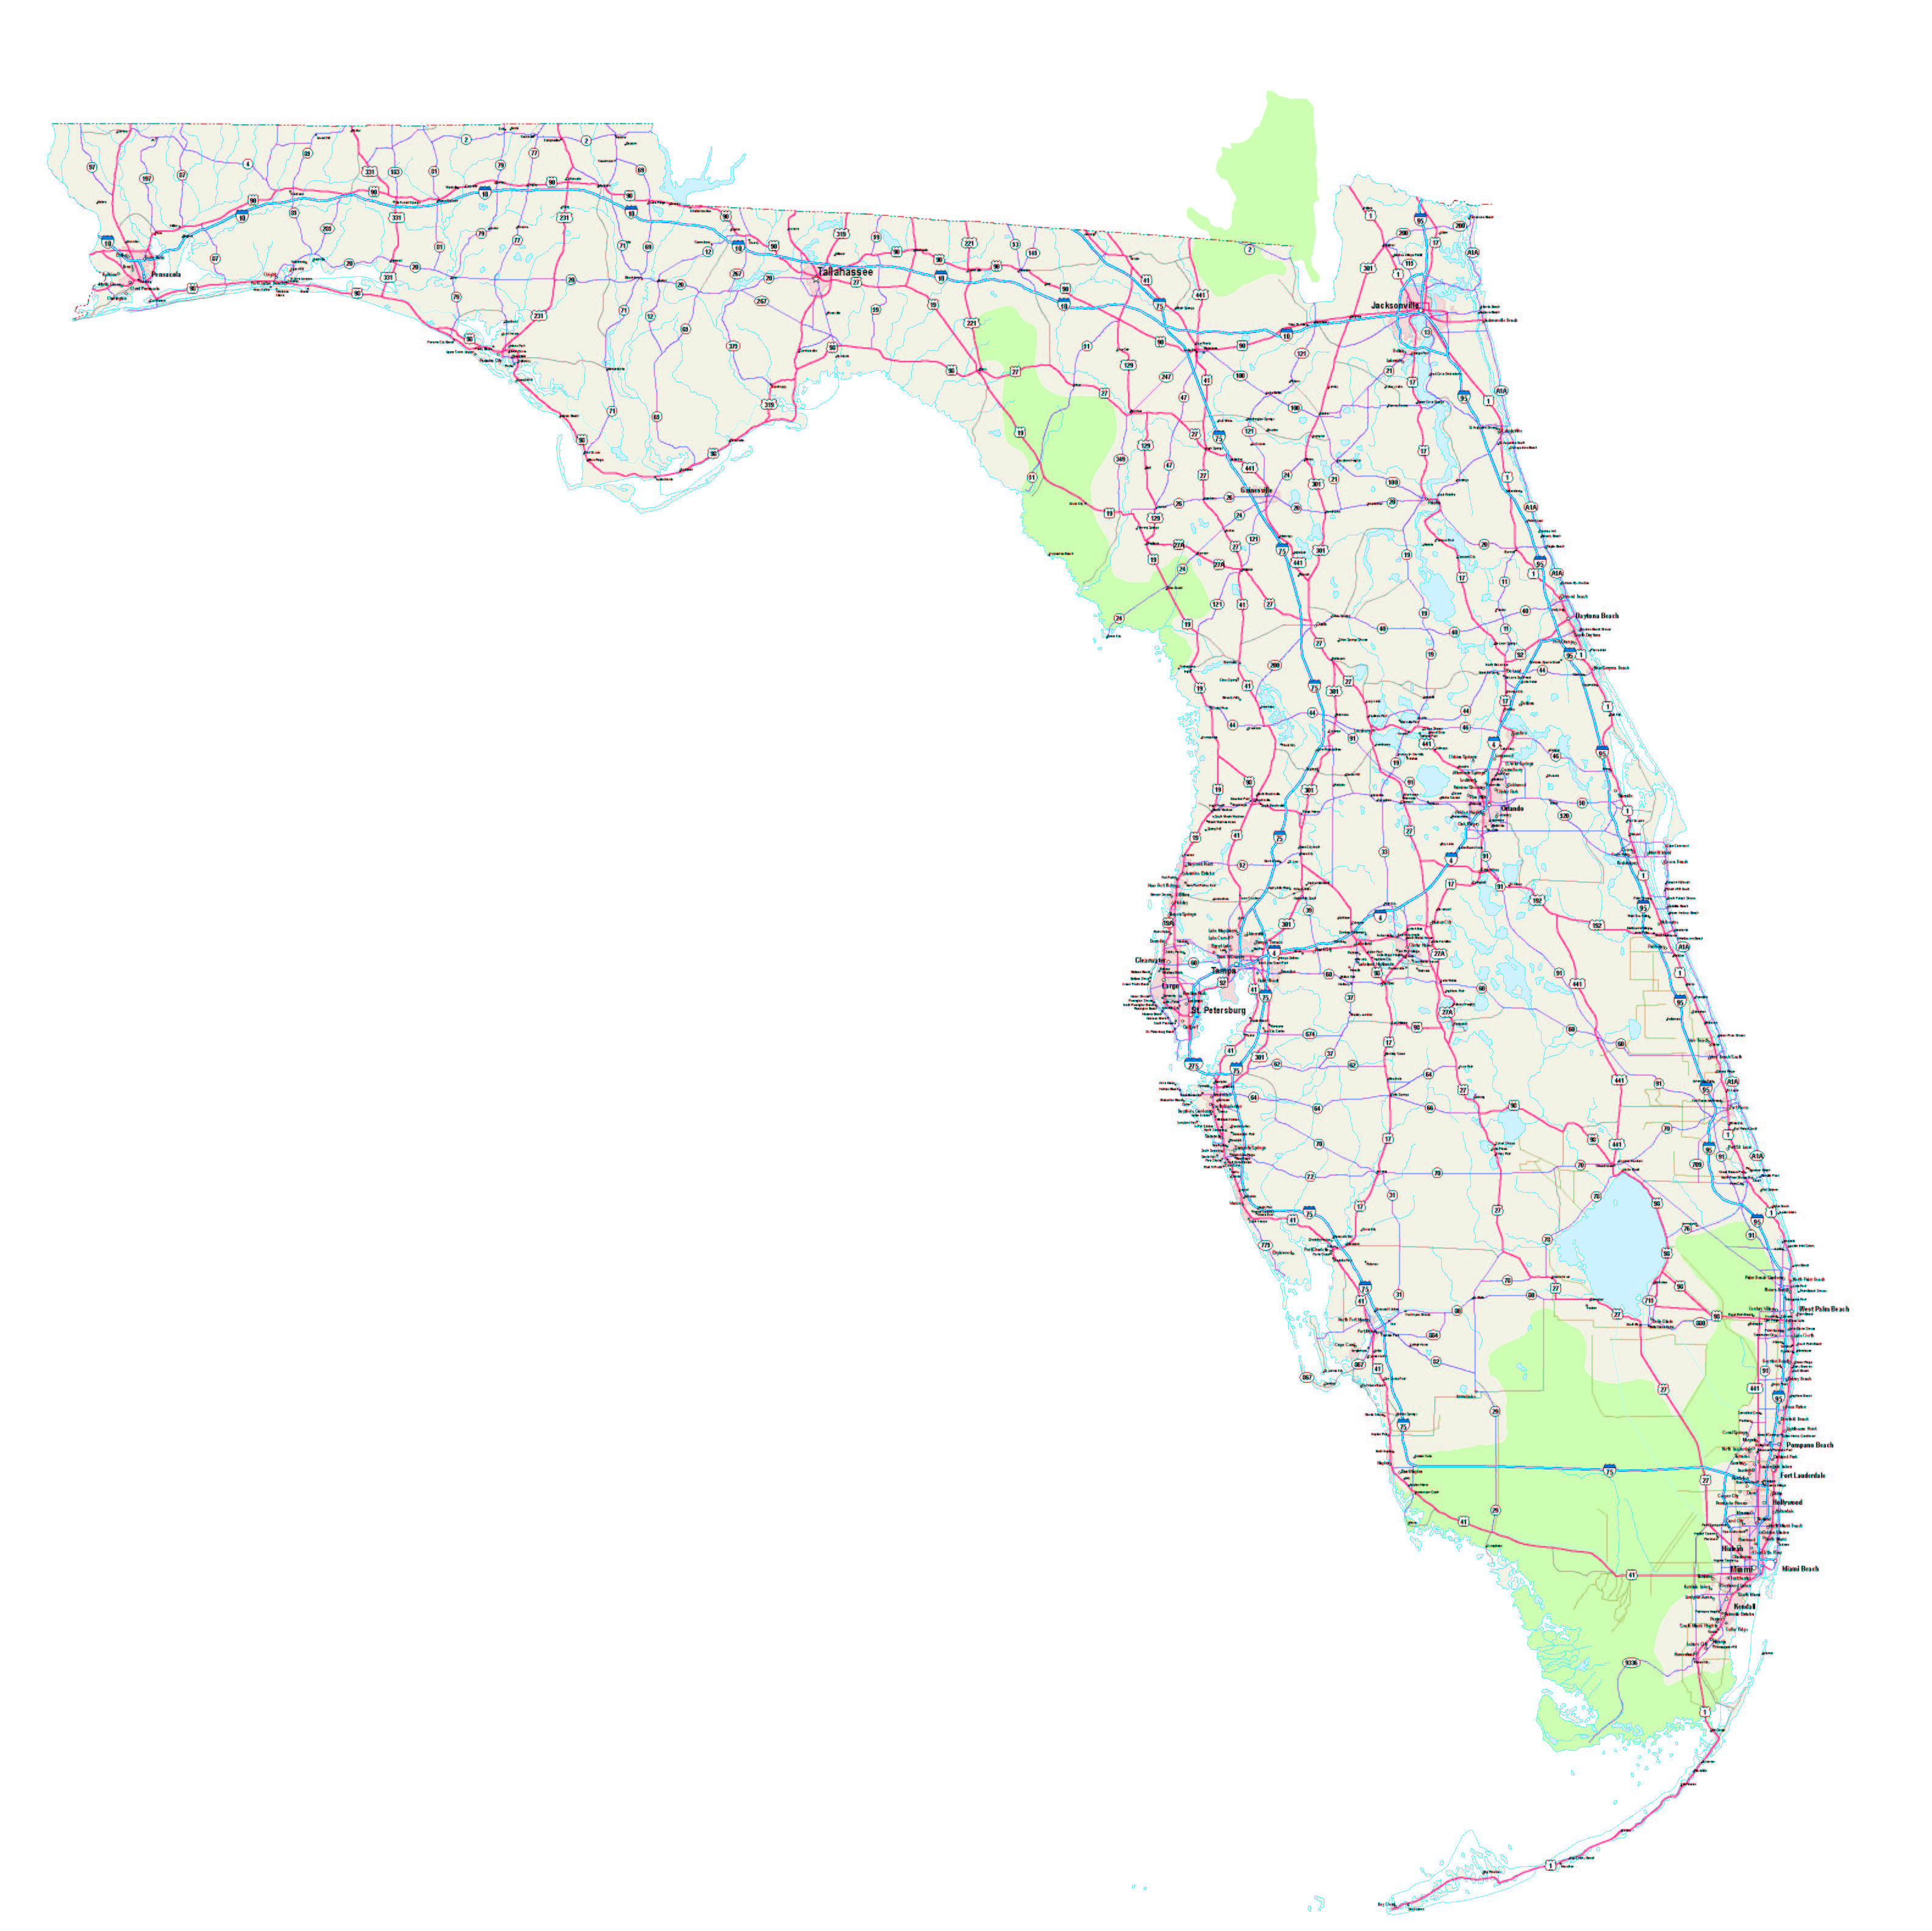 Map Of Western Florida Cities.Florida Maps Florida Map Map Of Florida Florida City Maps